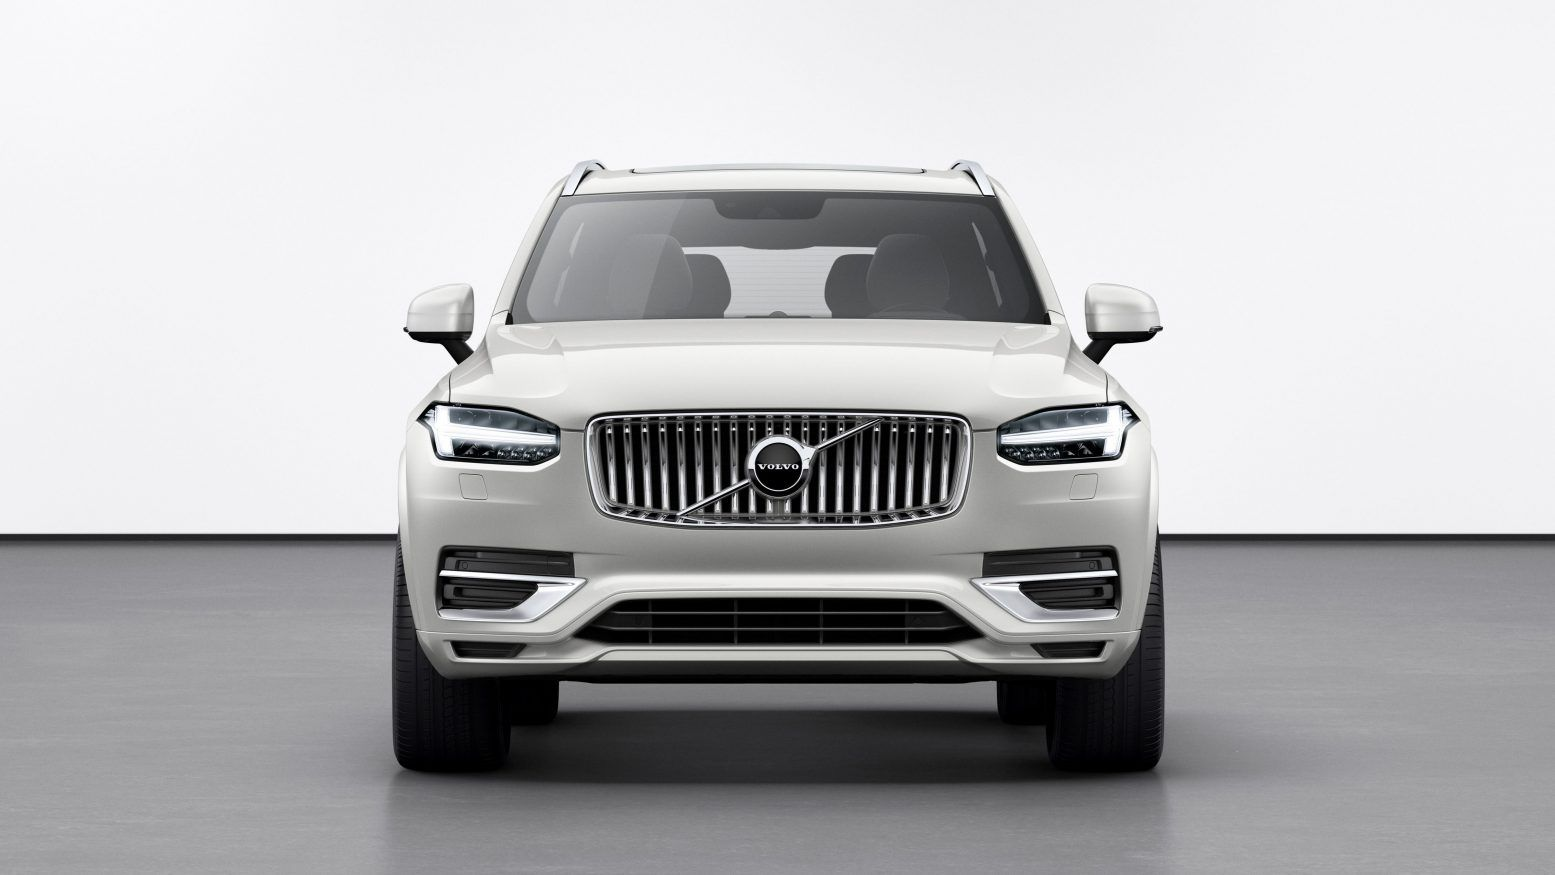 The New 2020 Volvo Xc90 Is The Bellwether Of The Well Known Scandinavian Carmaker This 3 Row High End Suv Features Refined Style And Elegantly Improved Feature